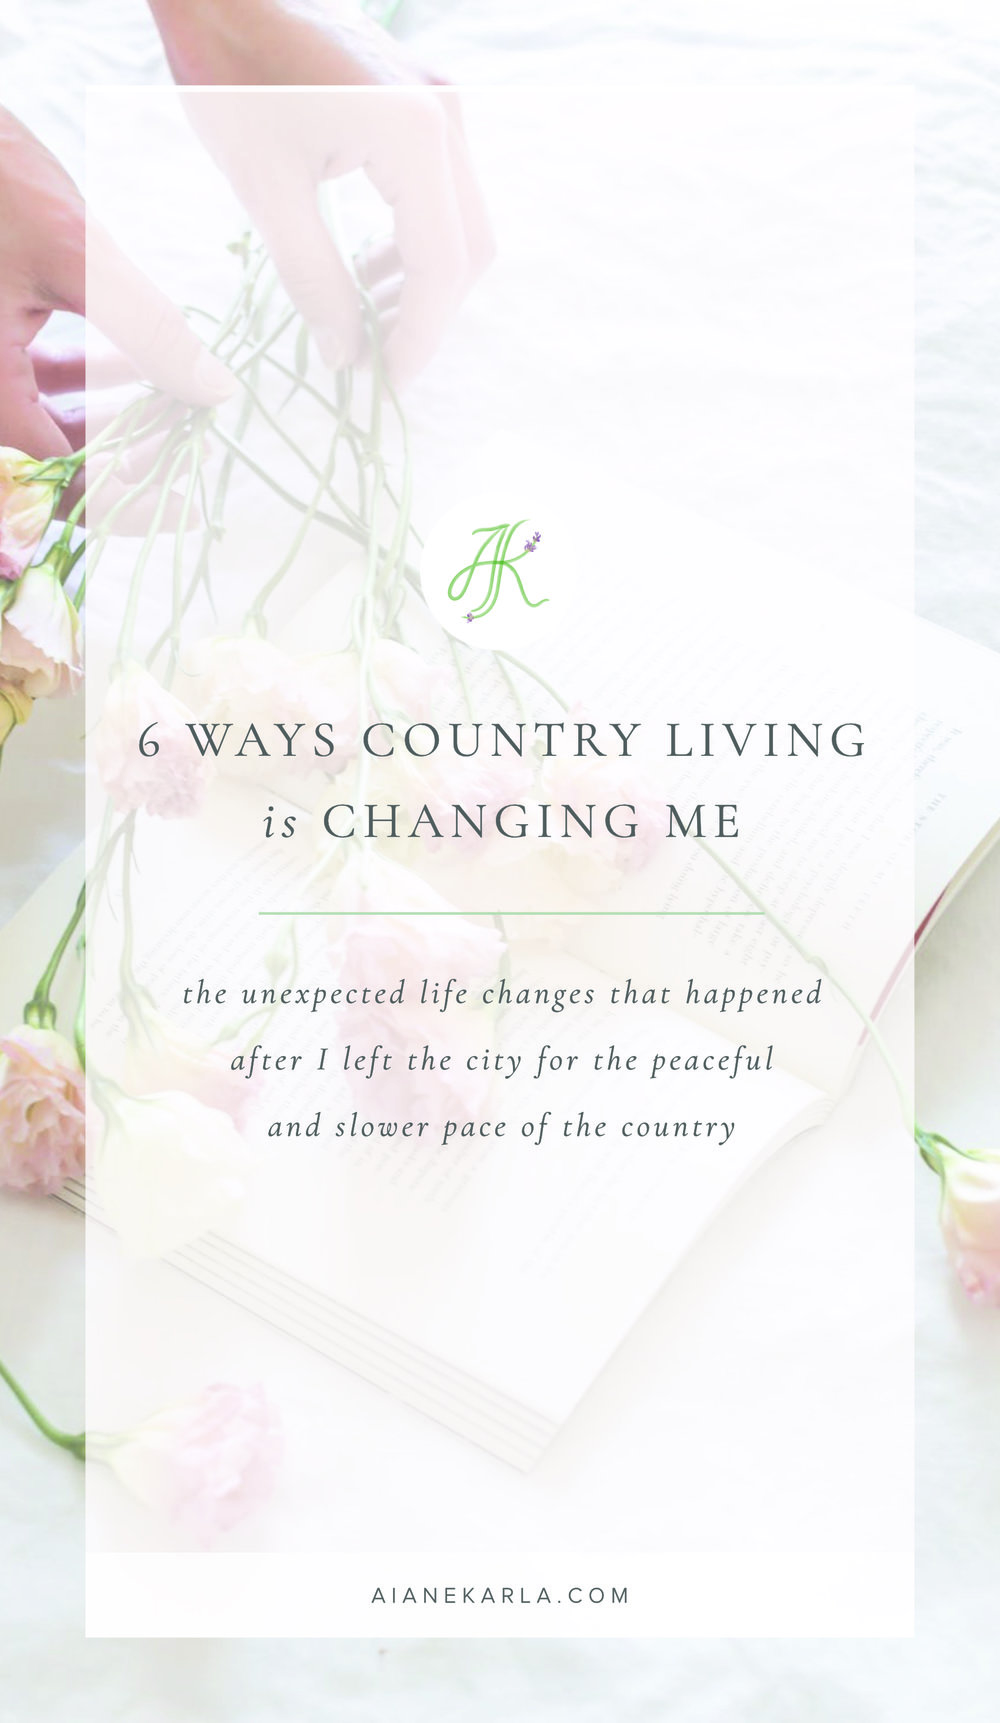 6-ways-country-living-is-changing-me-pinterest.jpg